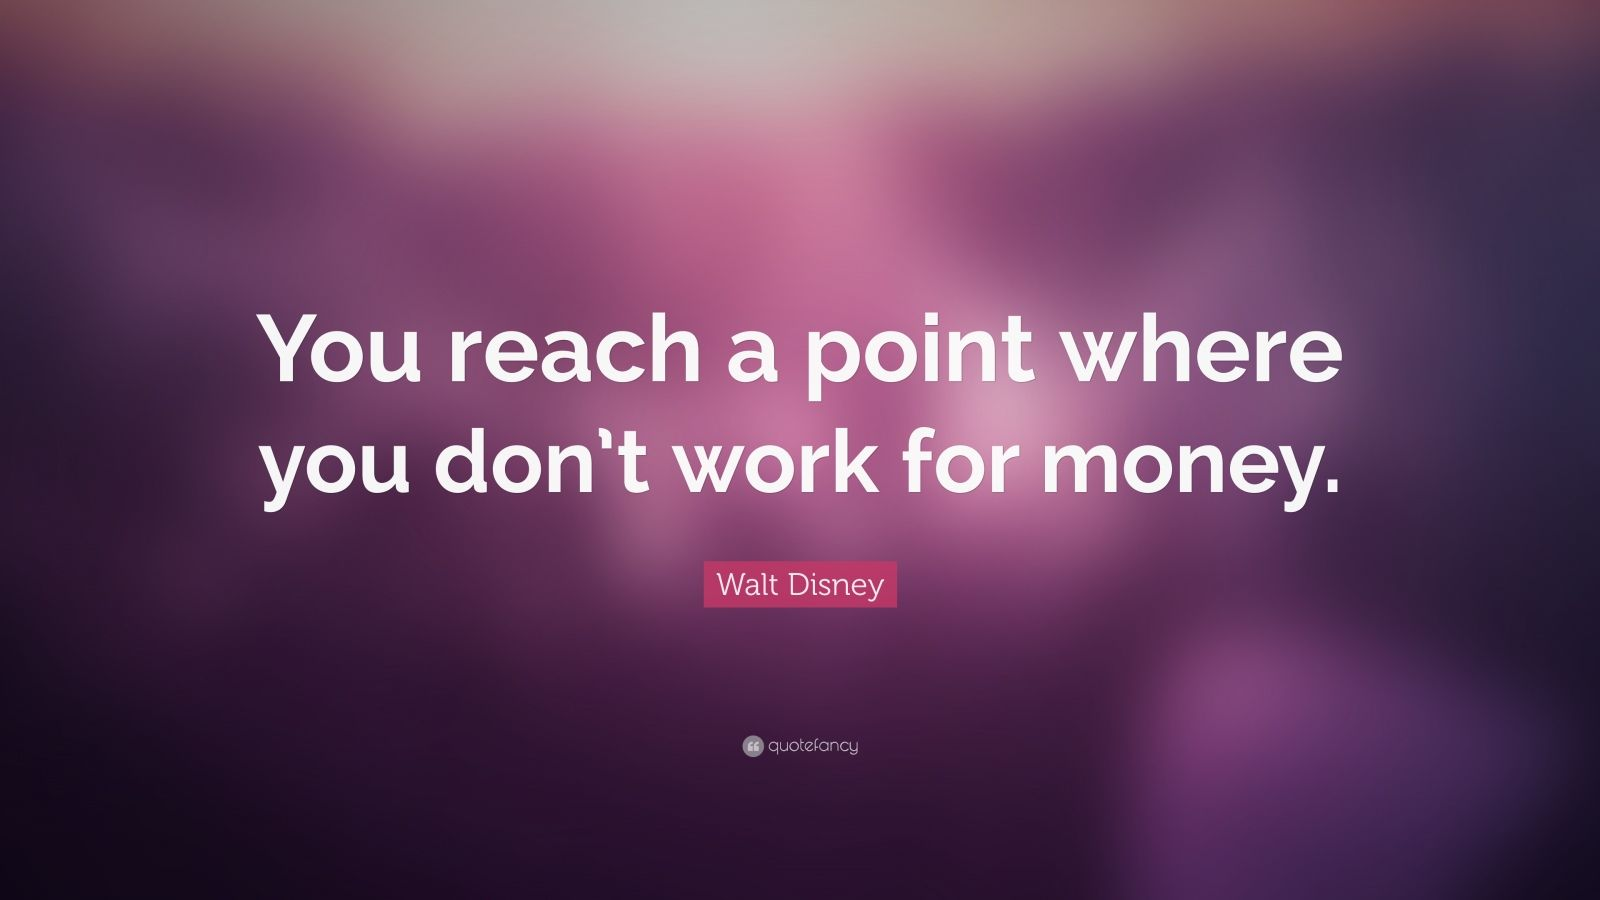 """Walt Disney Quote: """"You reach a point where you don't work for money."""""""